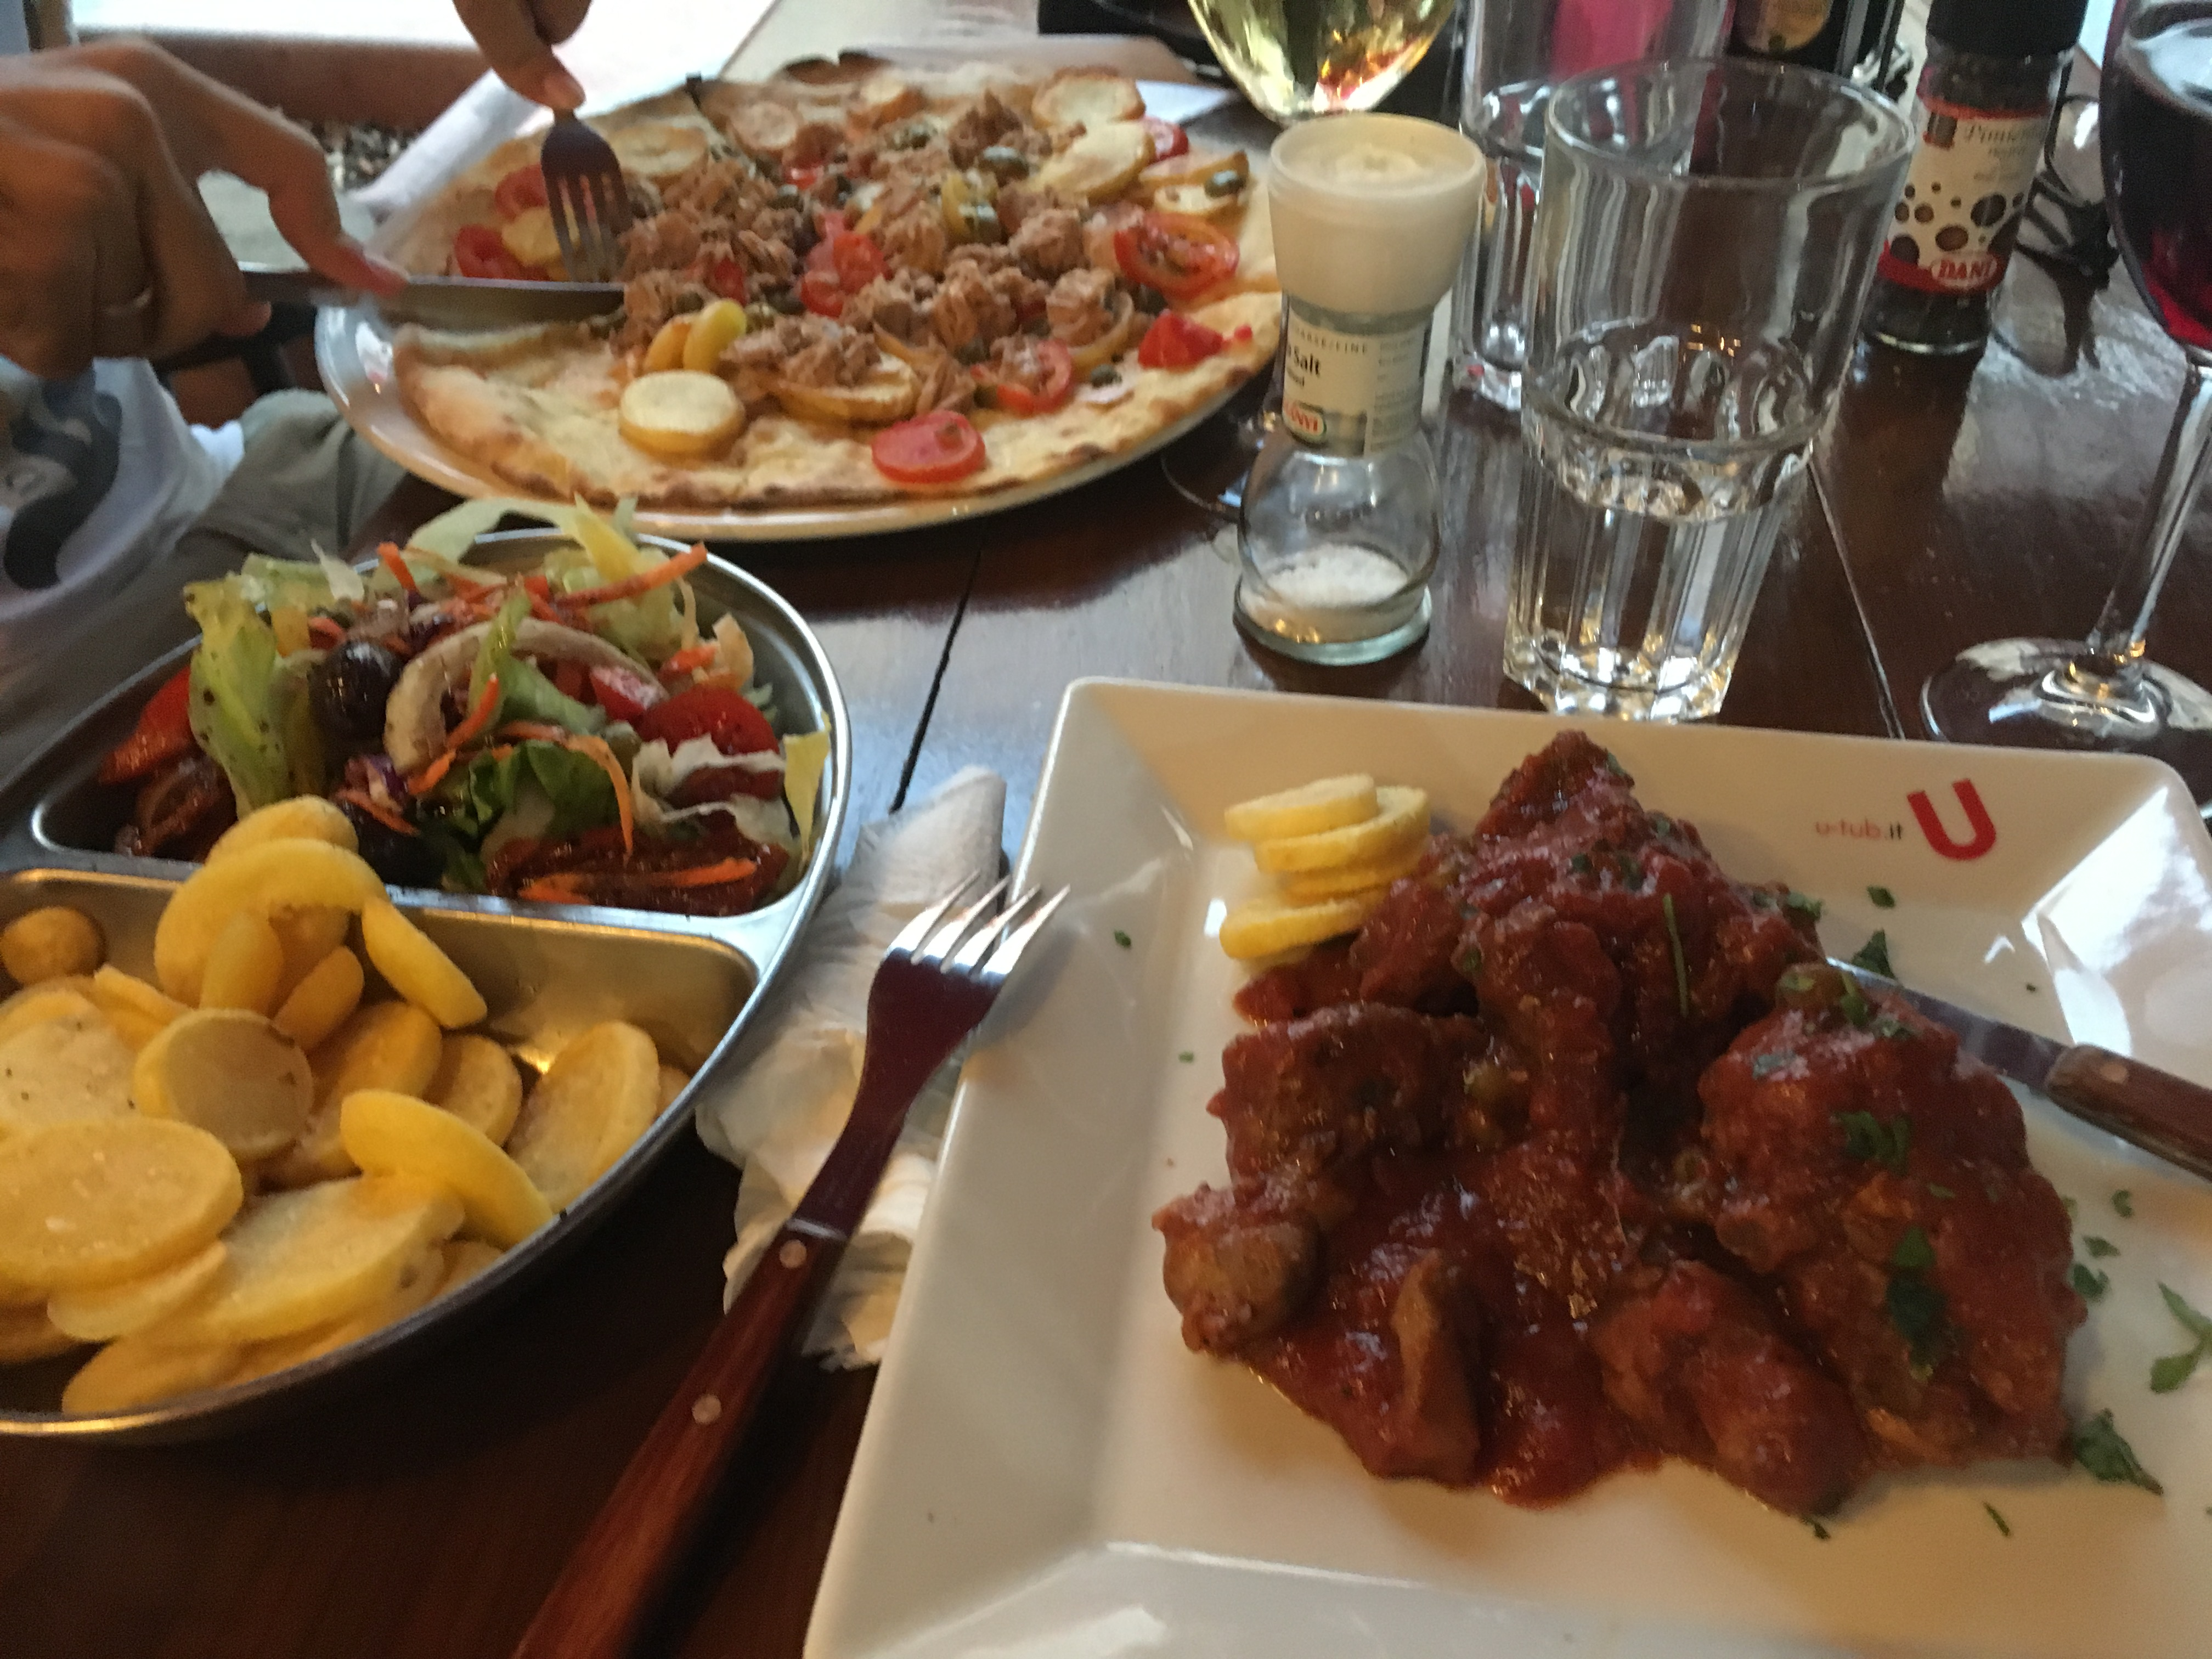 Maltese food, pizza and rabbit potatoes and wine